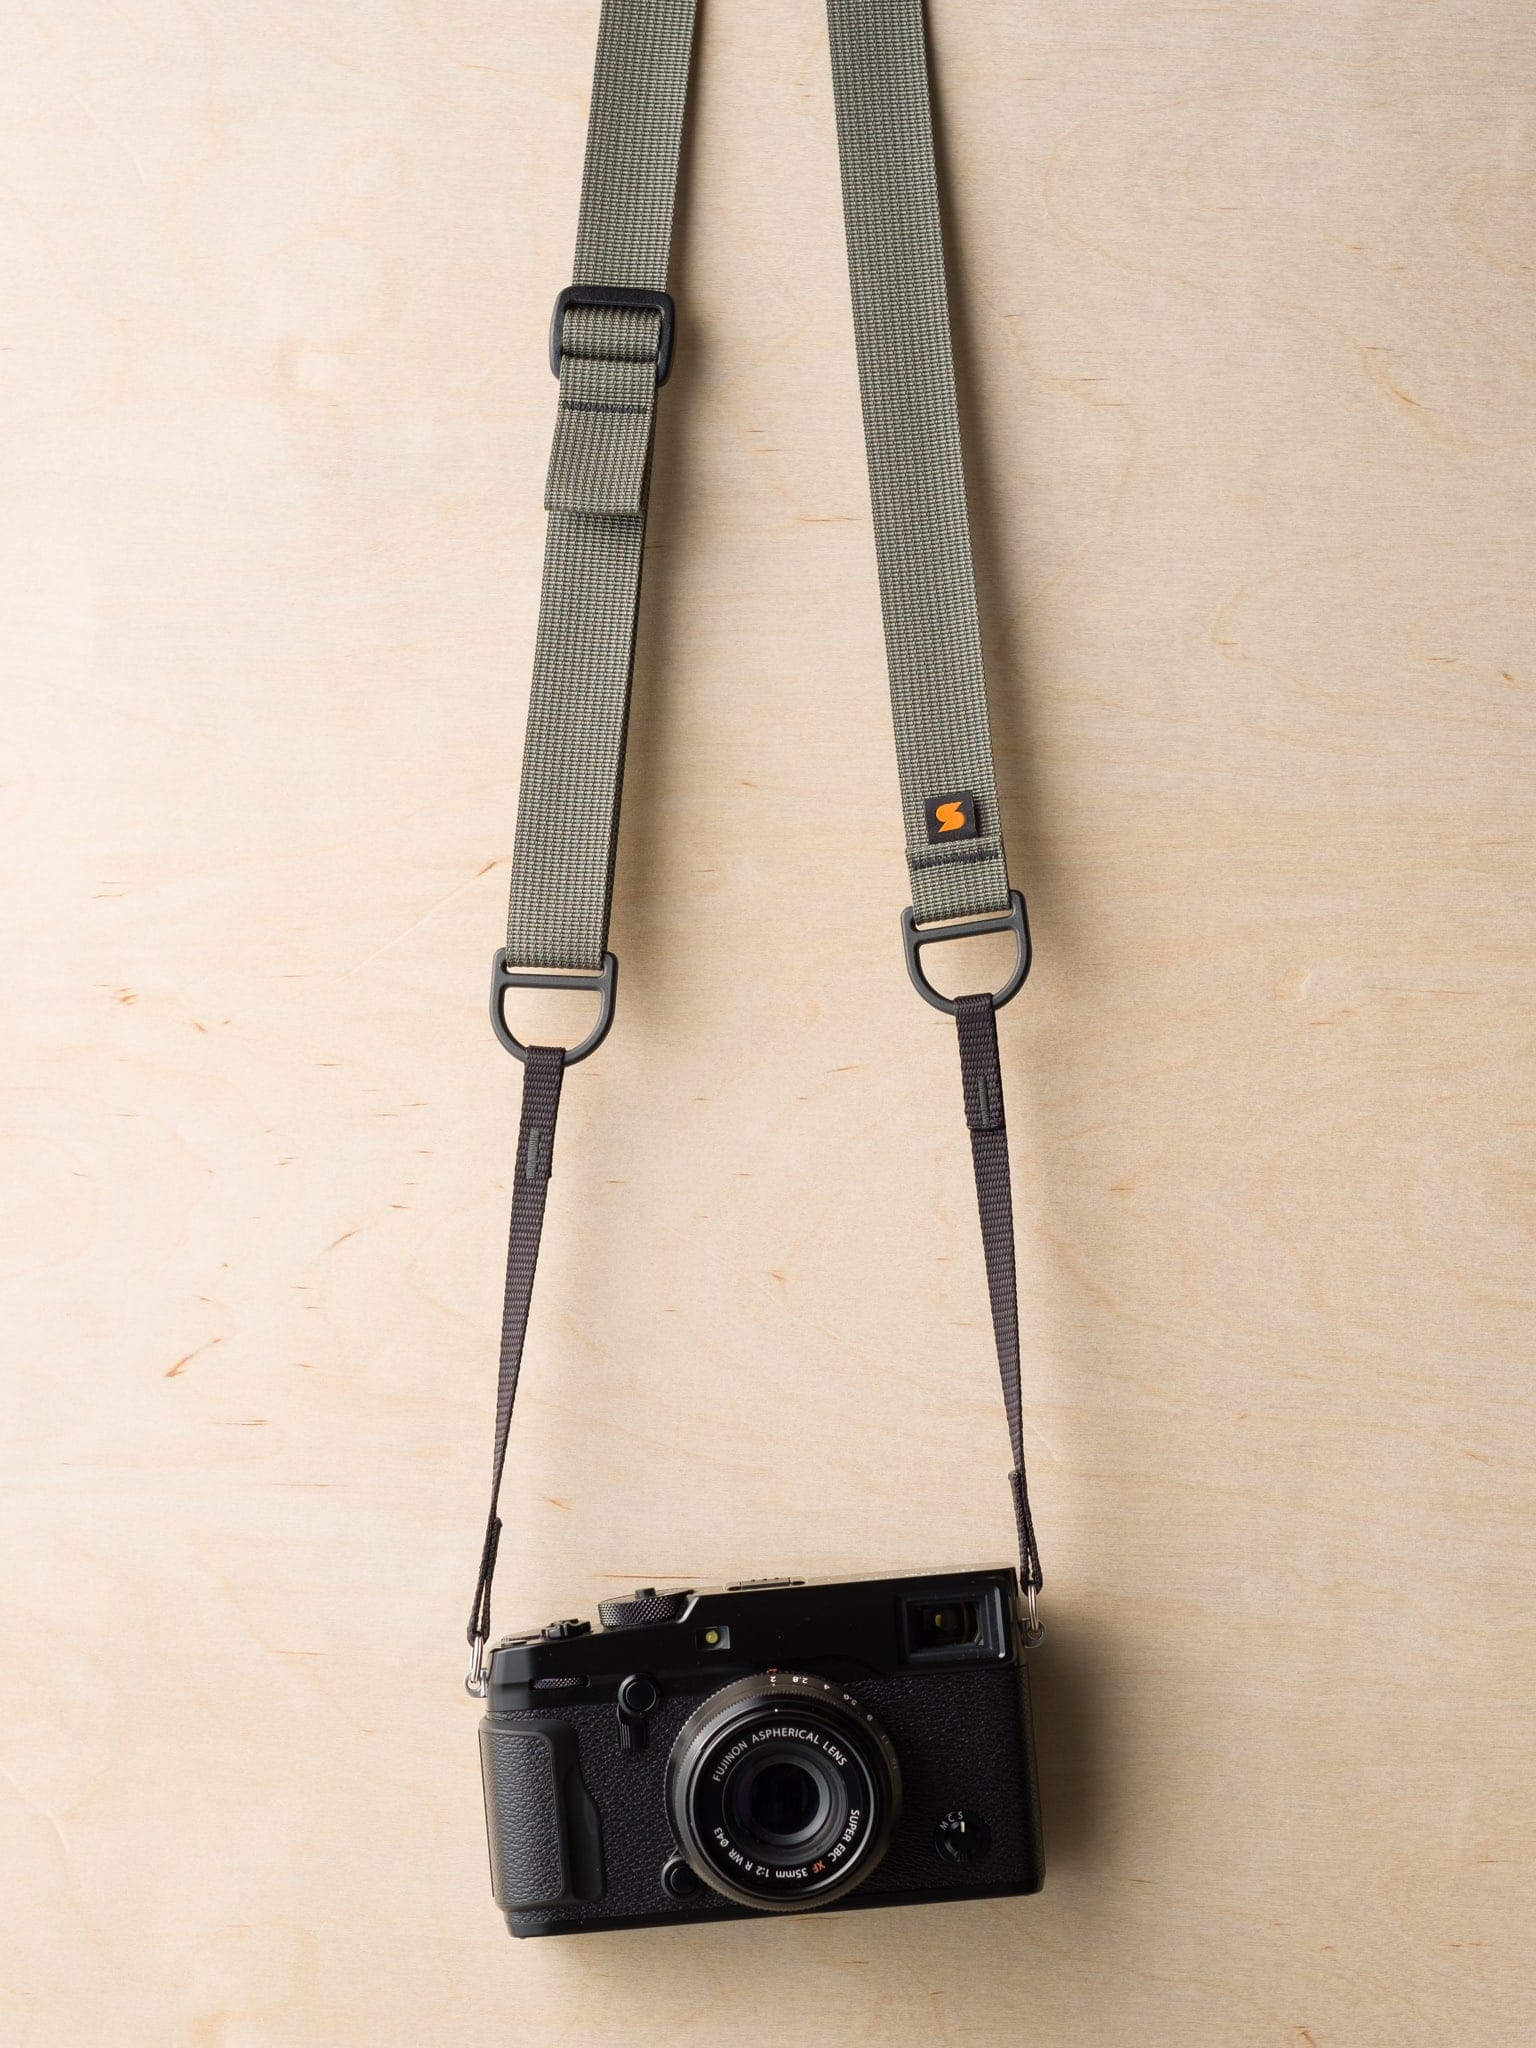 Confident Leica Binocular Strap Latest Fashion Cameras & Photo Binoculars & Telescopes